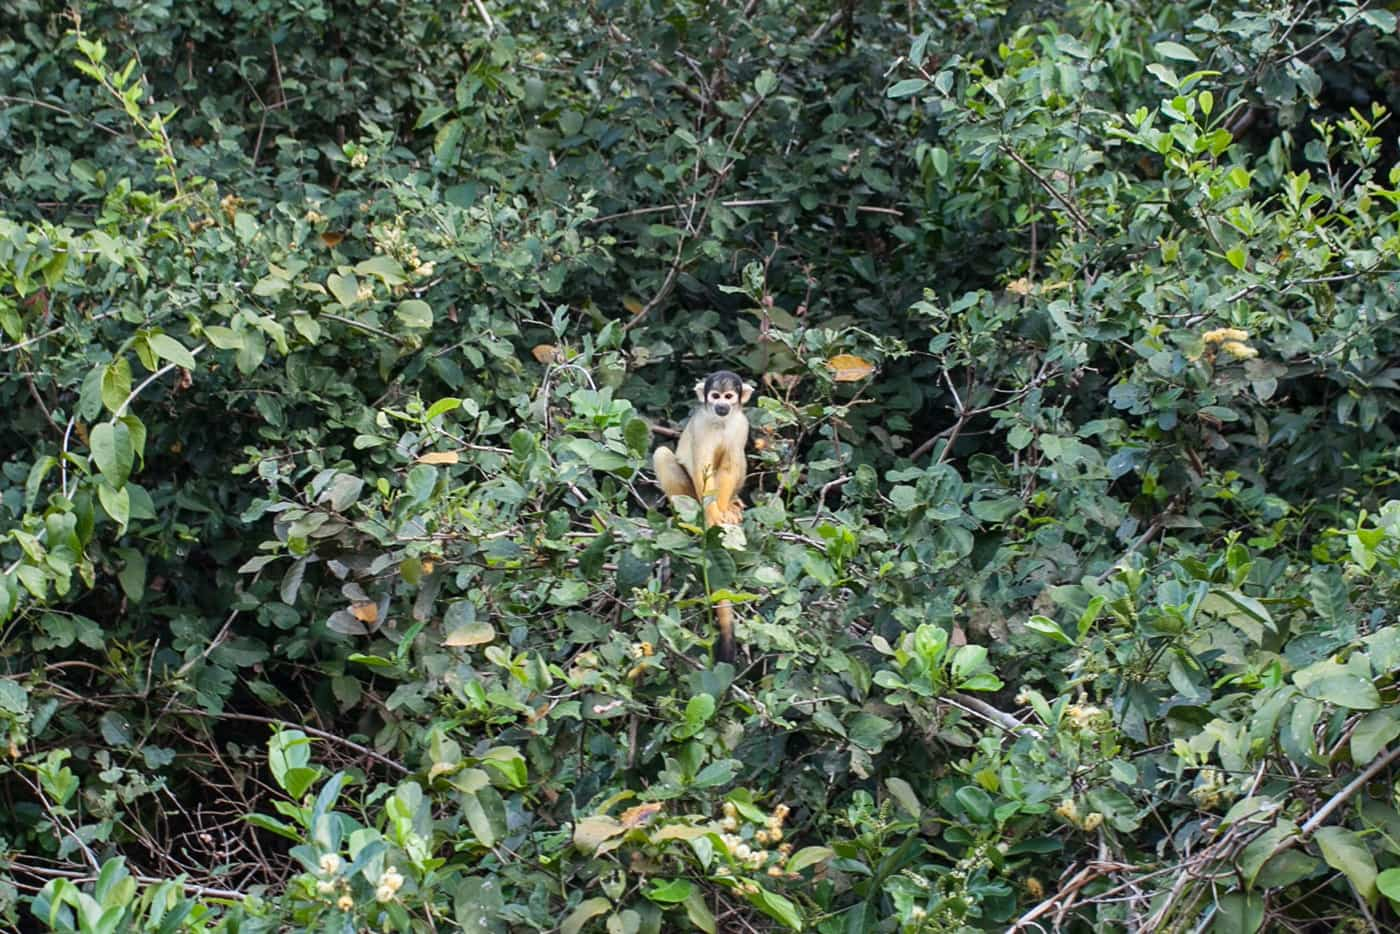 Monkeys - The Pampas in the Bolivian Amazon